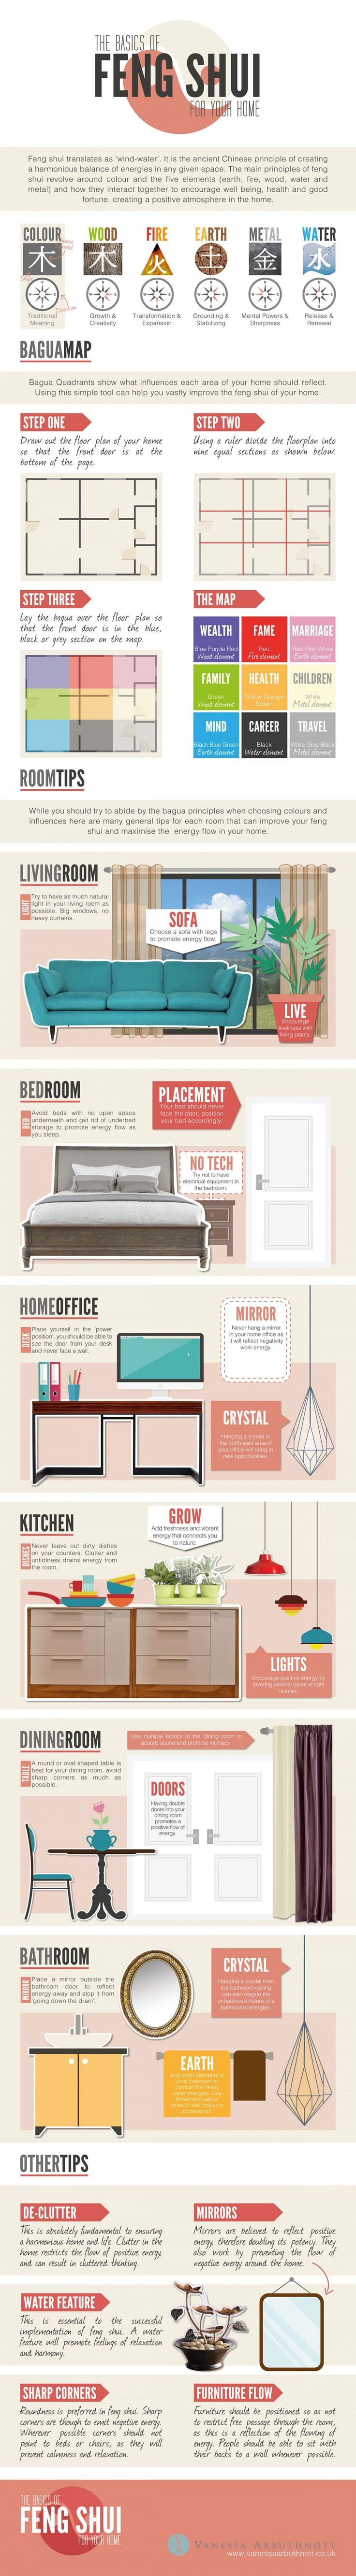 Best 25+ Feng shui ideas only on Pinterest | Feng shui bedroom ...